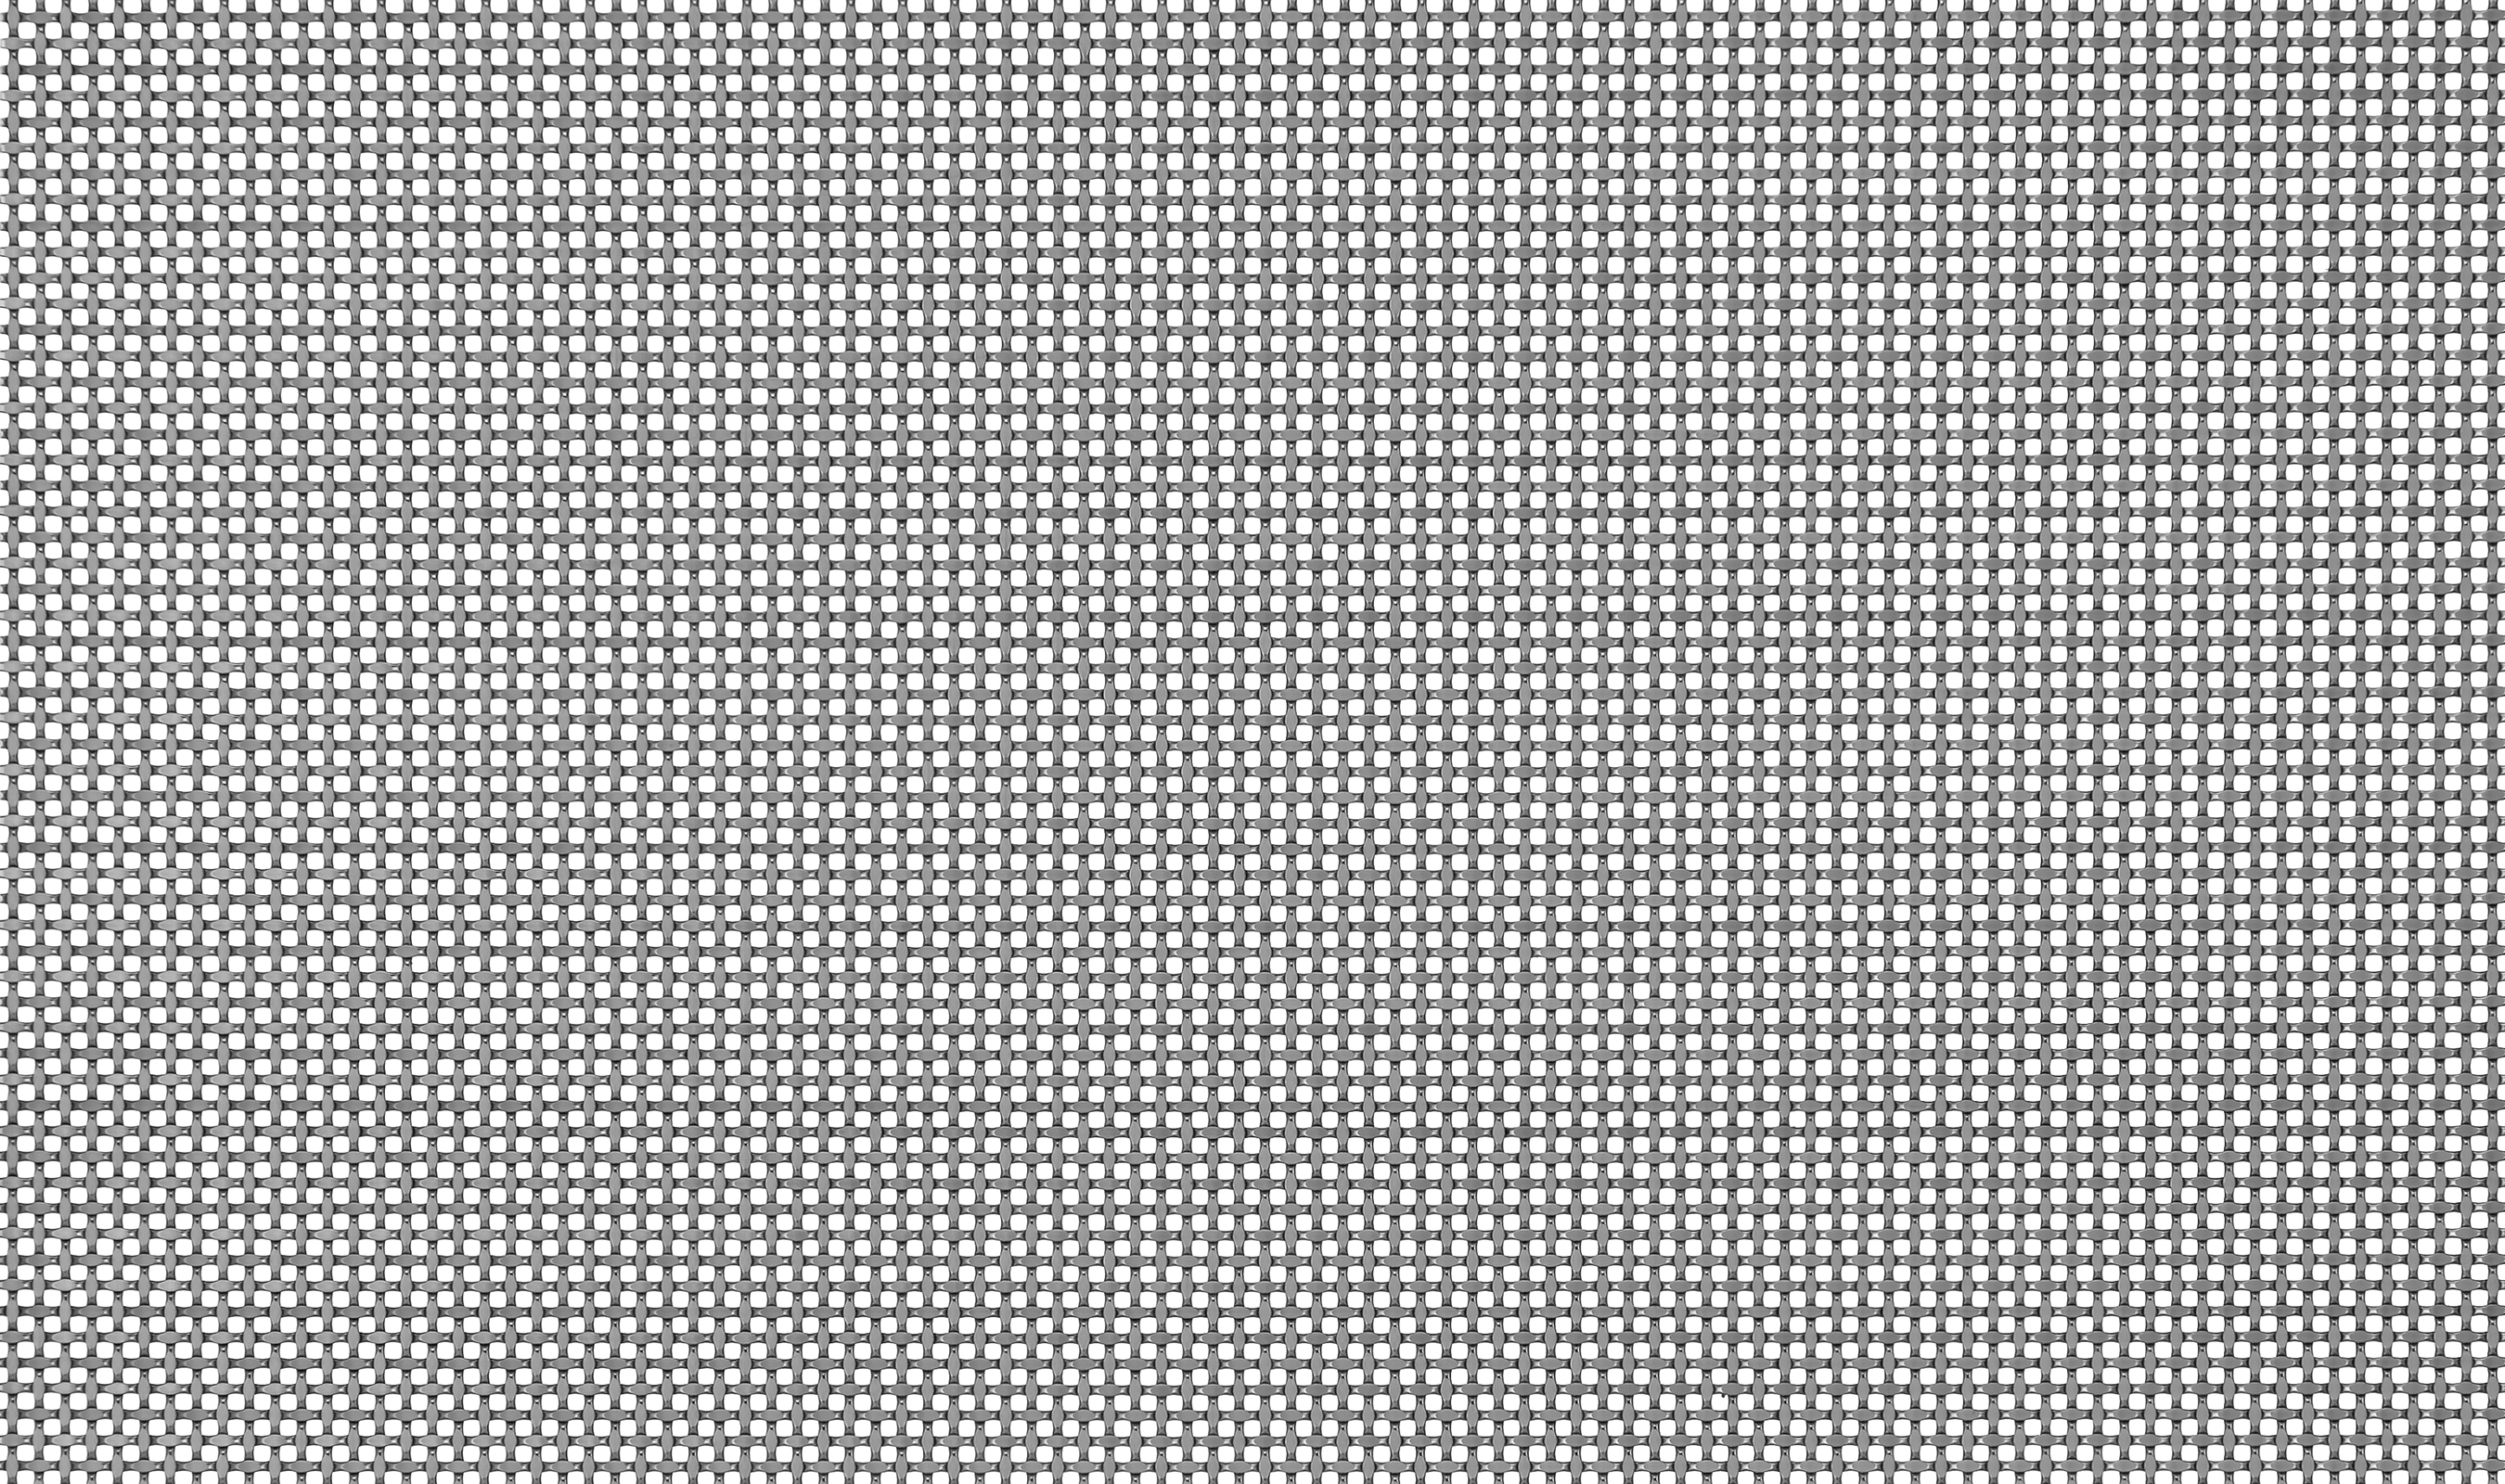 S-51 wire mesh pattern in stainless steel